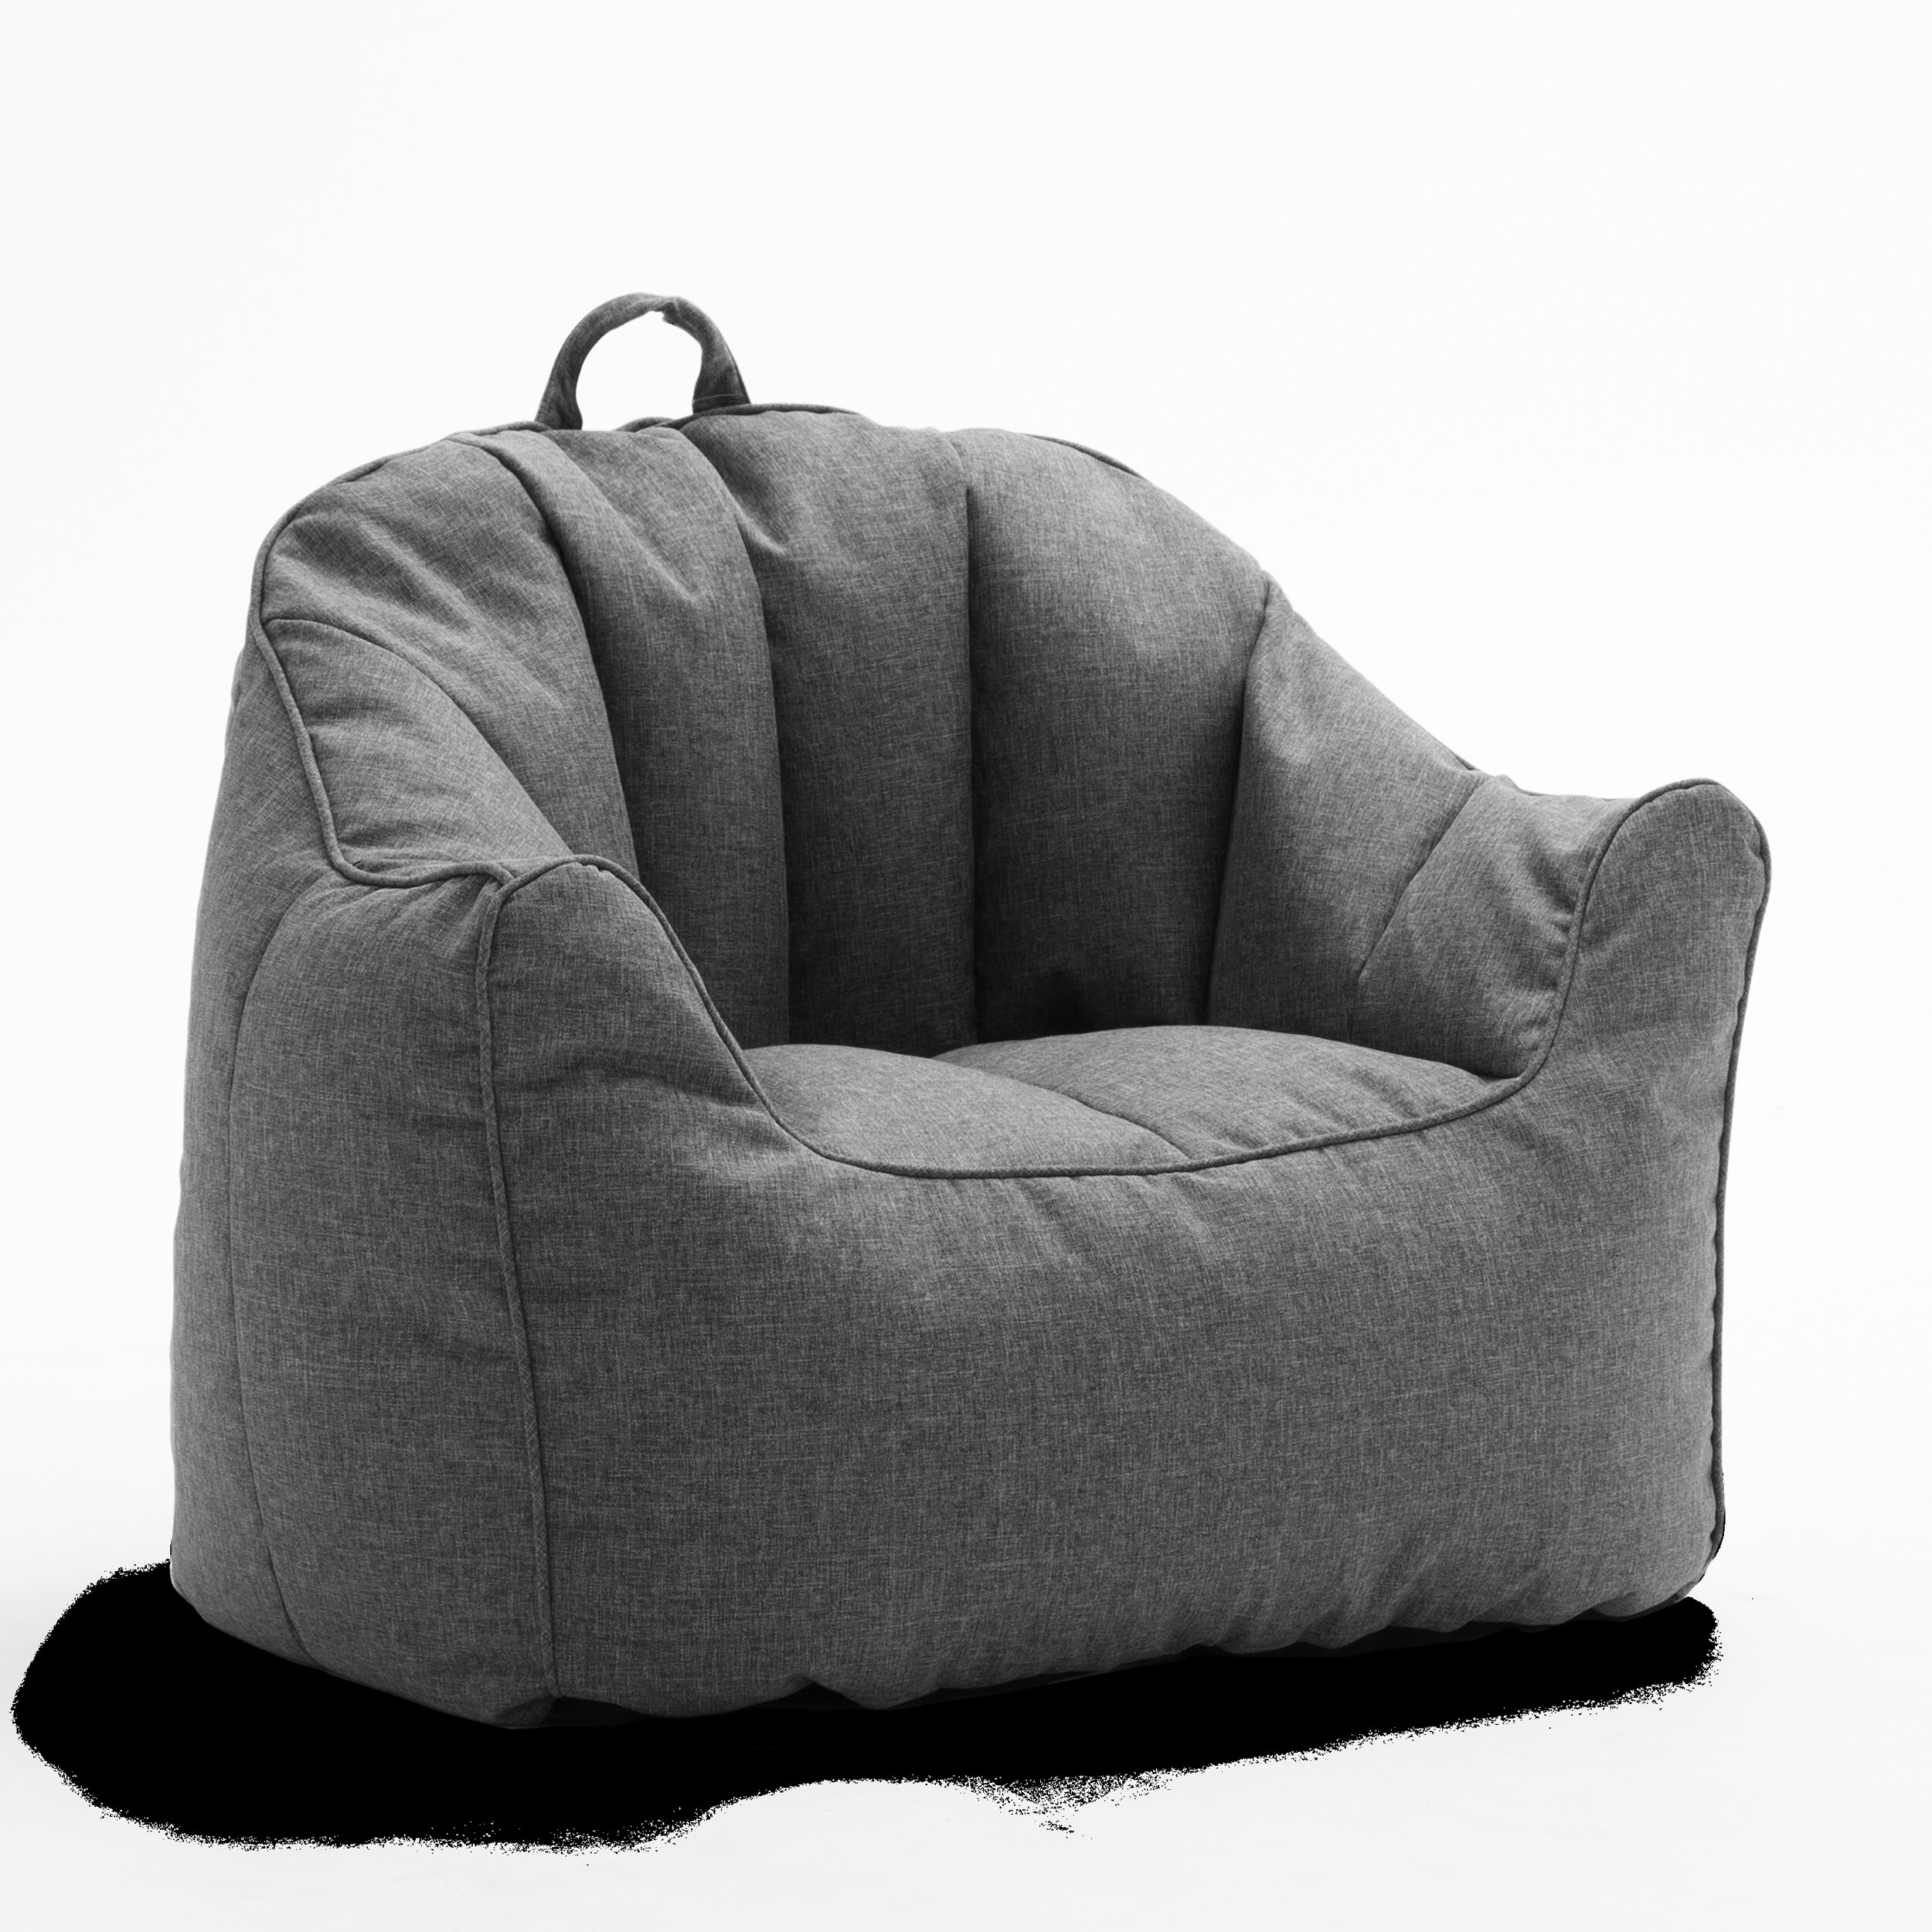 Tremendous Comfort Research Big Joe Lux Hug Medium Bean Bag Chair Ibusinesslaw Wood Chair Design Ideas Ibusinesslaworg